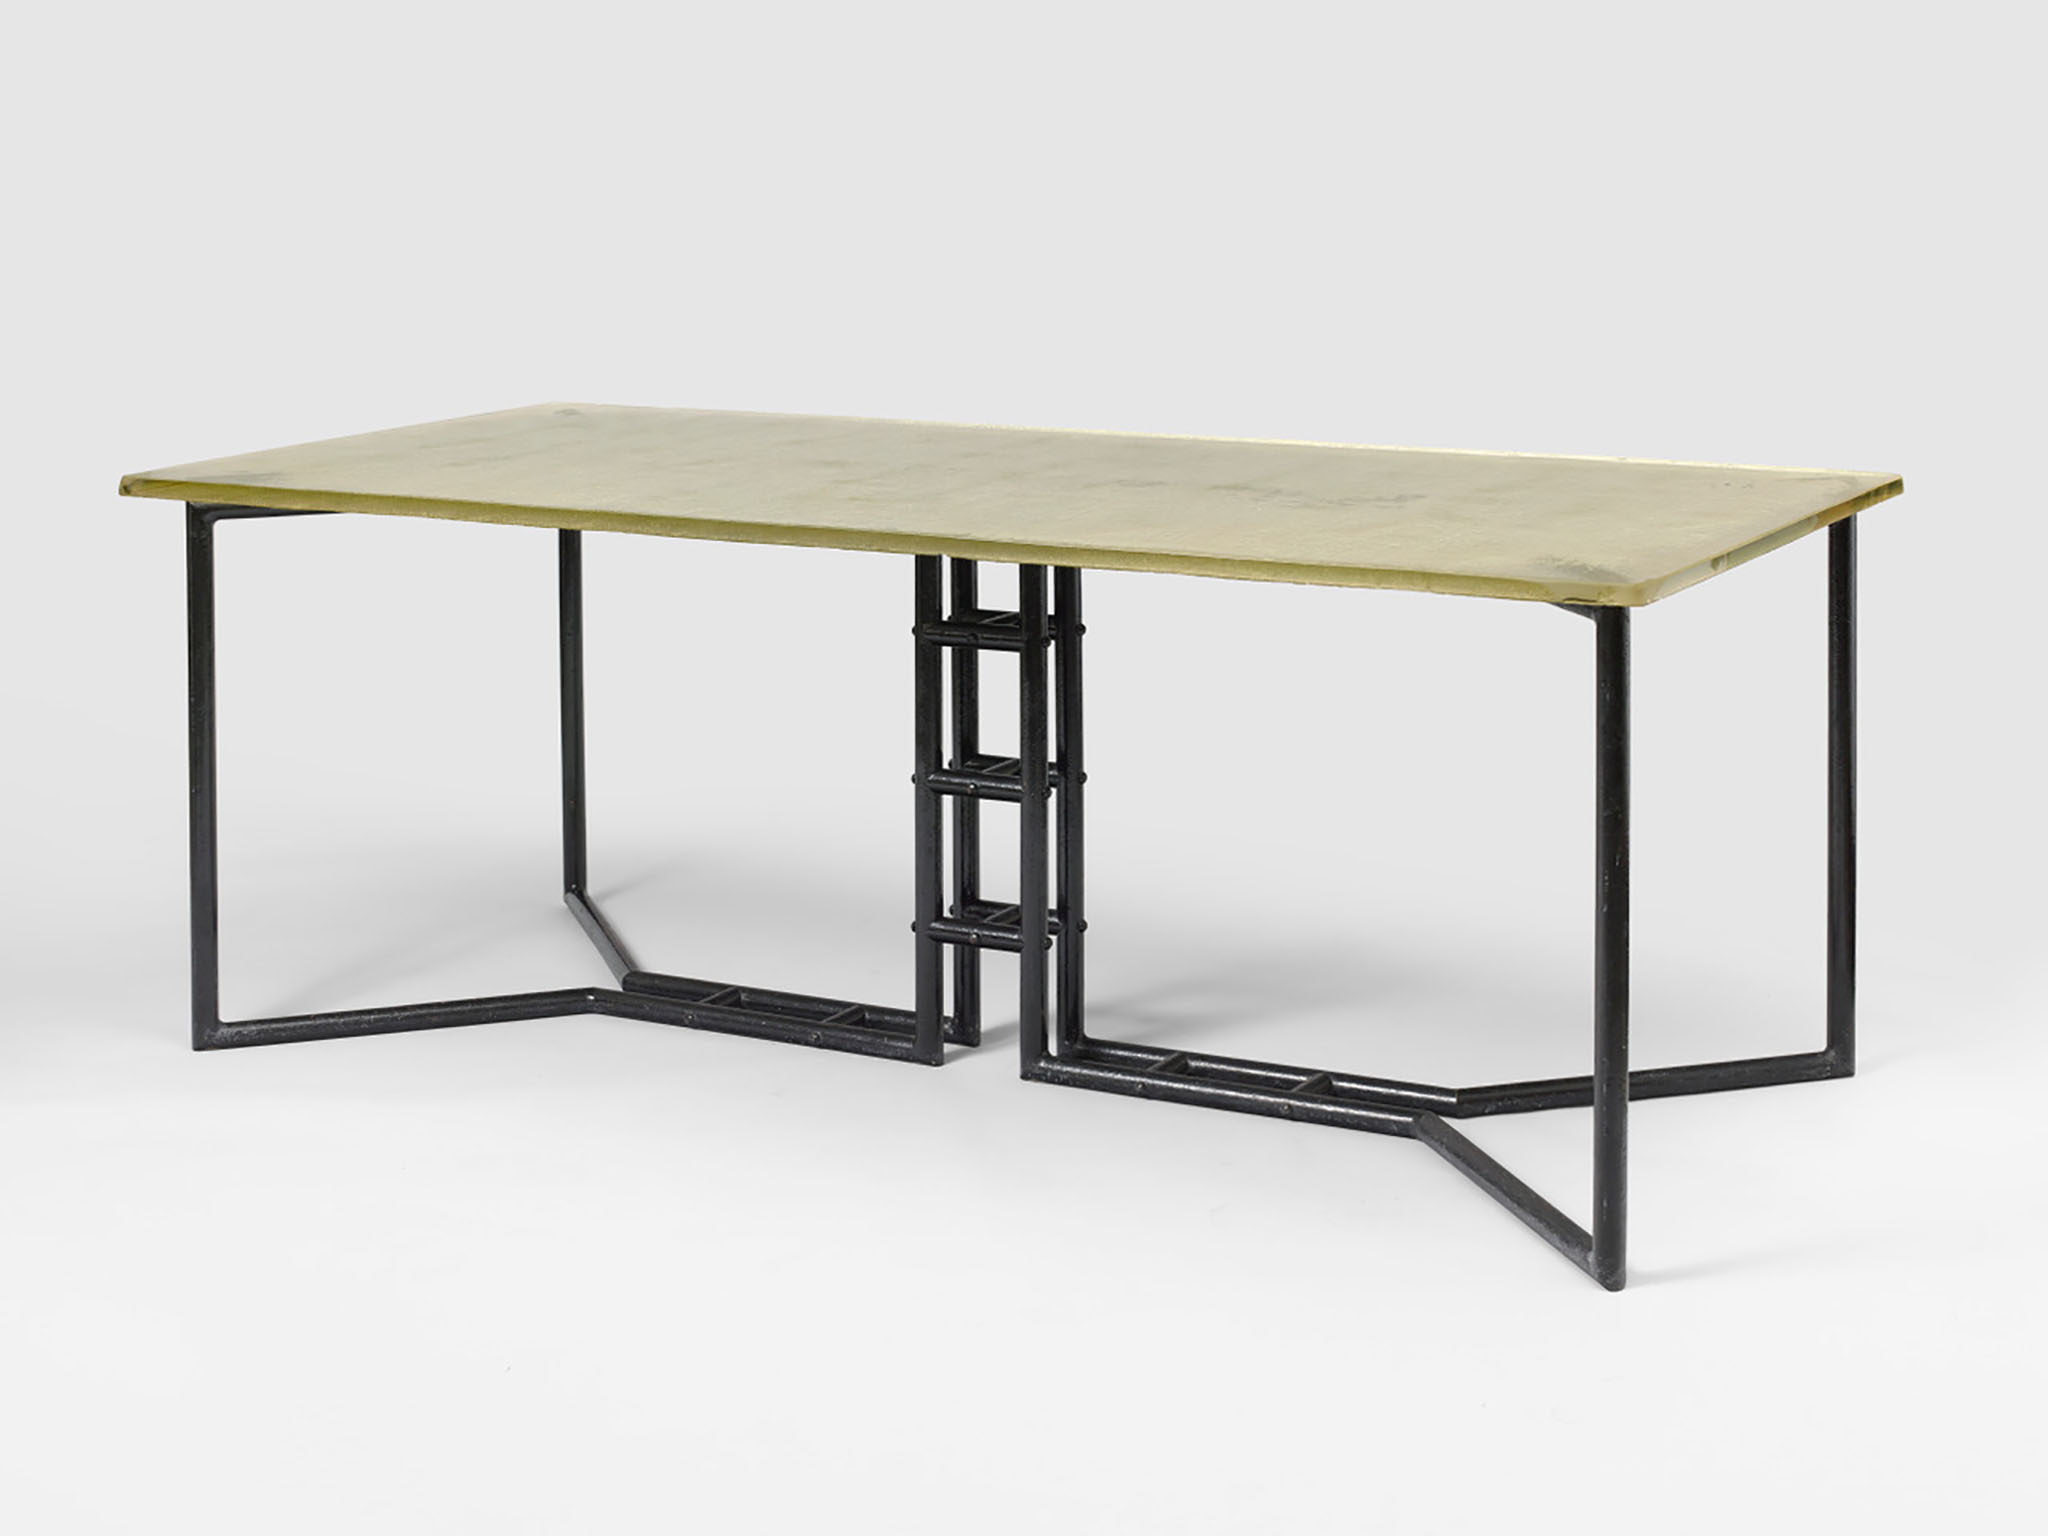 Pierre Chareau, Dining Table ca. 1932  Glass and painted metal; size: 70 x 80 x 80 cm Courtesy of Jacques Lacoste Gallery ⓒ  Hervé Lewandowski